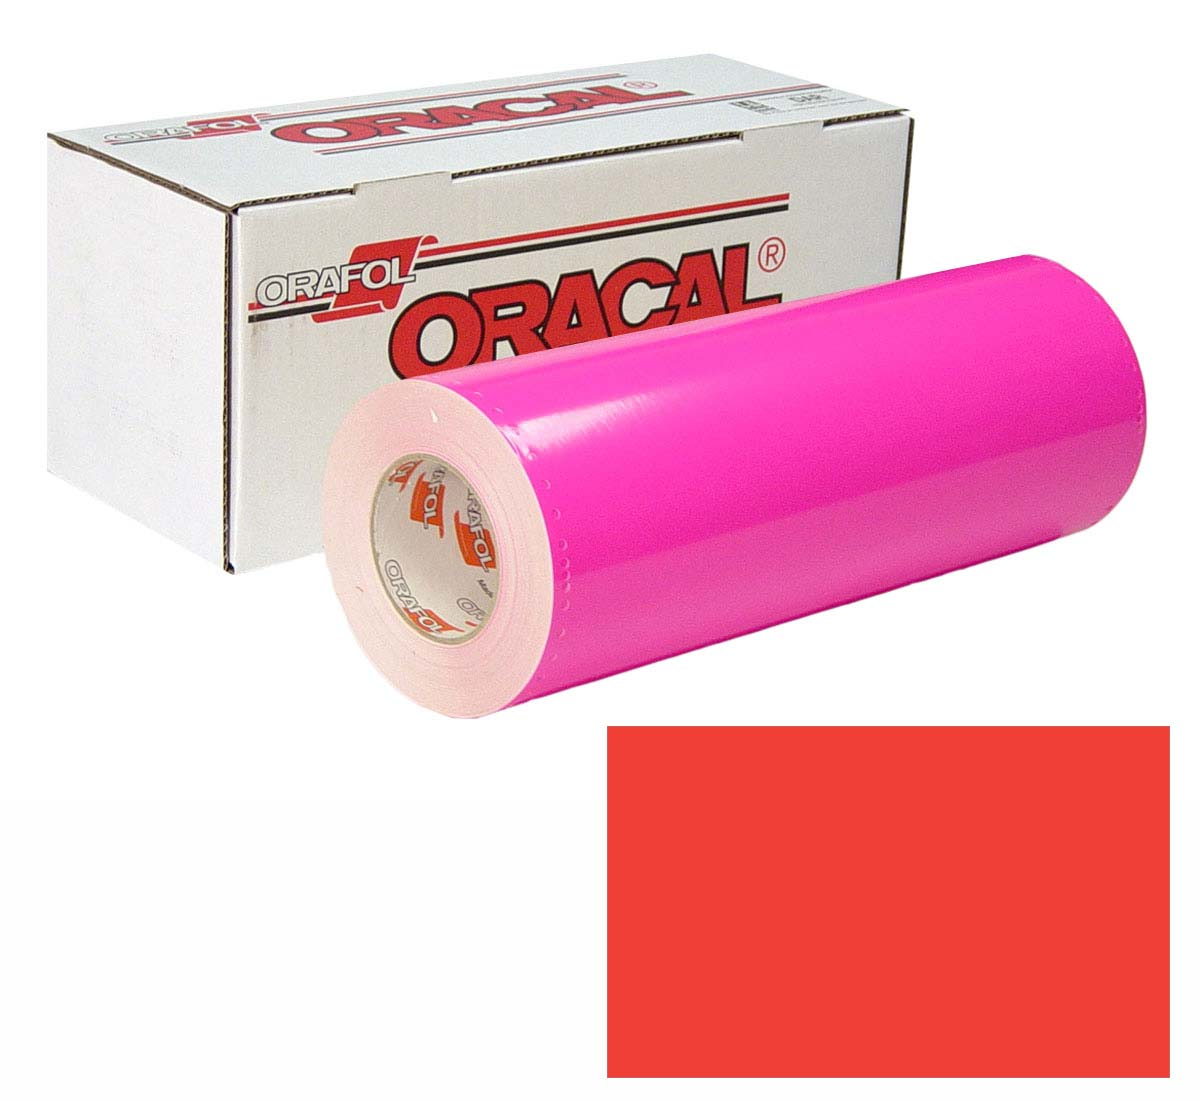 ORACAL 6510 Fluor 15In X10Yd 039 Red